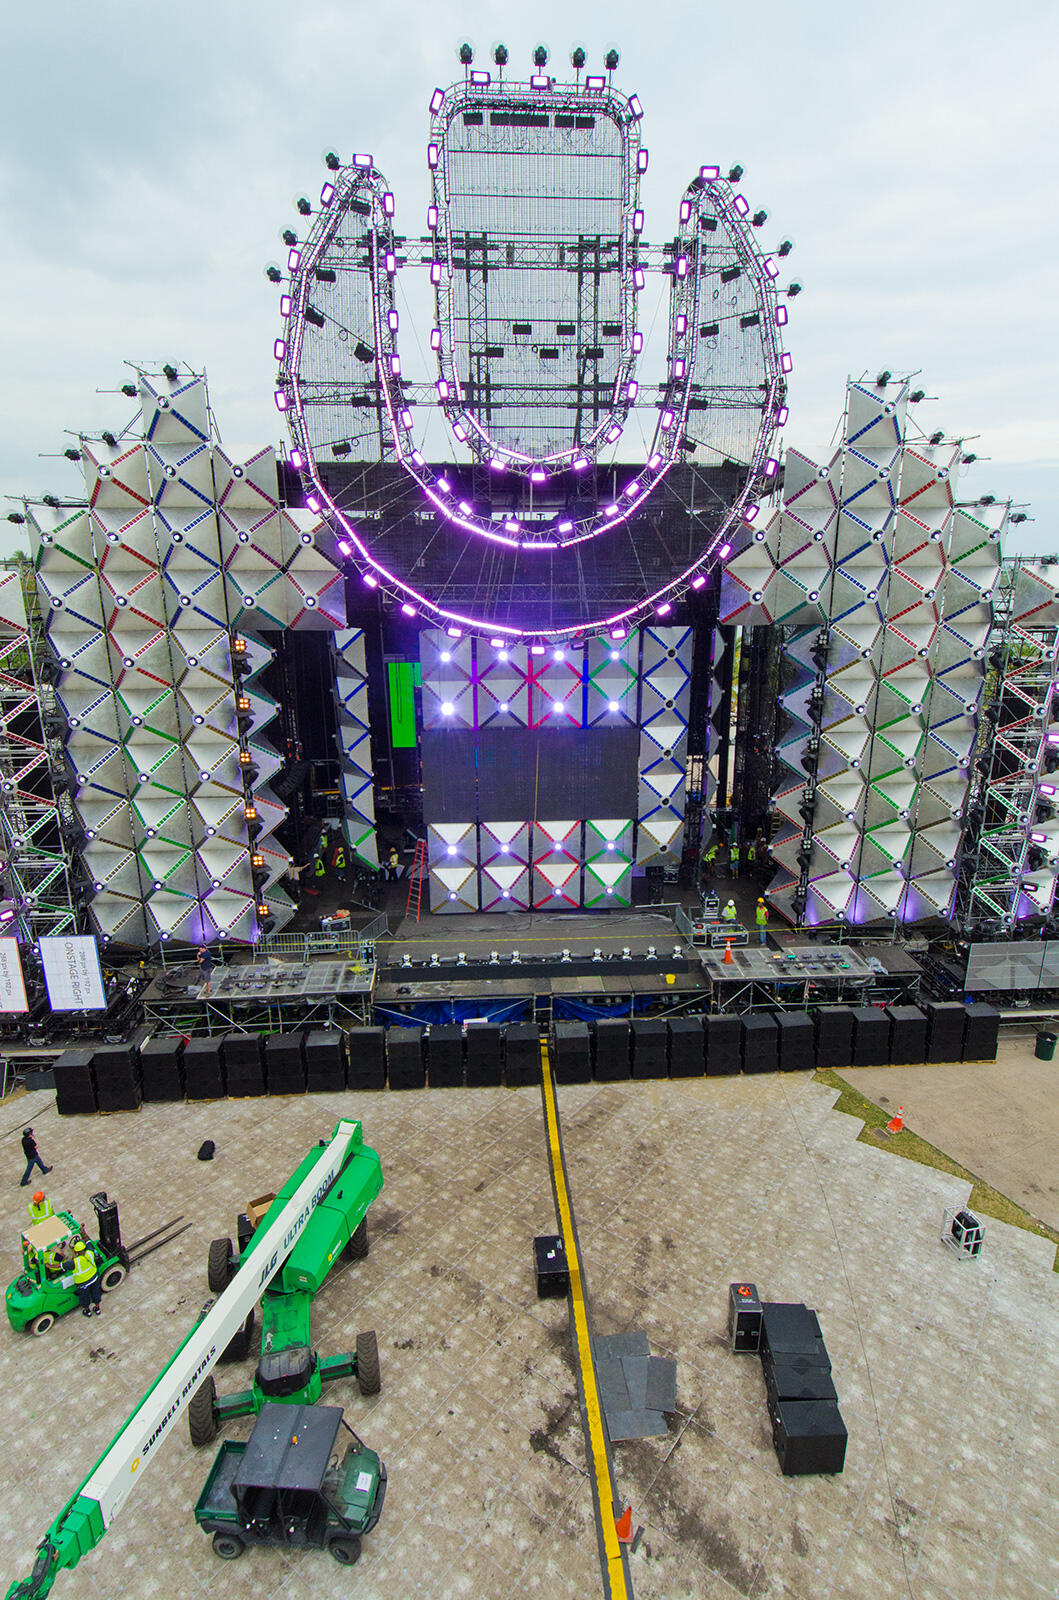 Fun fact: the Ultra mainstage is 200 ft wide and over 100 ft high. http://t.co/qiBUY8aUAi